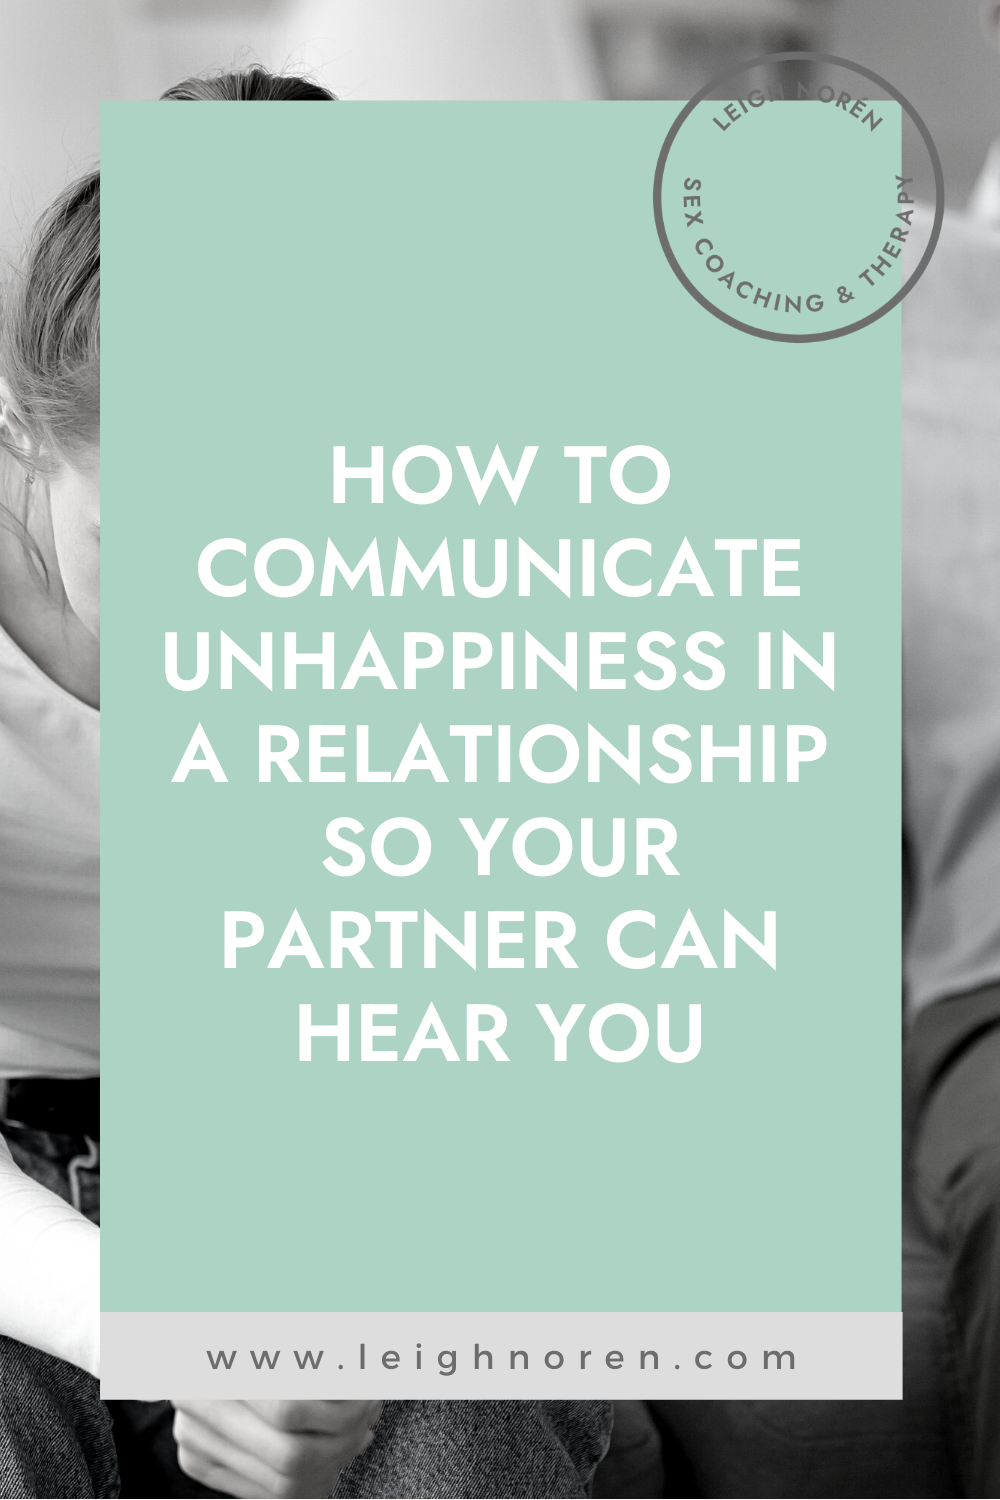 How to Communicate Unhappiness in Your Relationship So That Your Partner Hears You